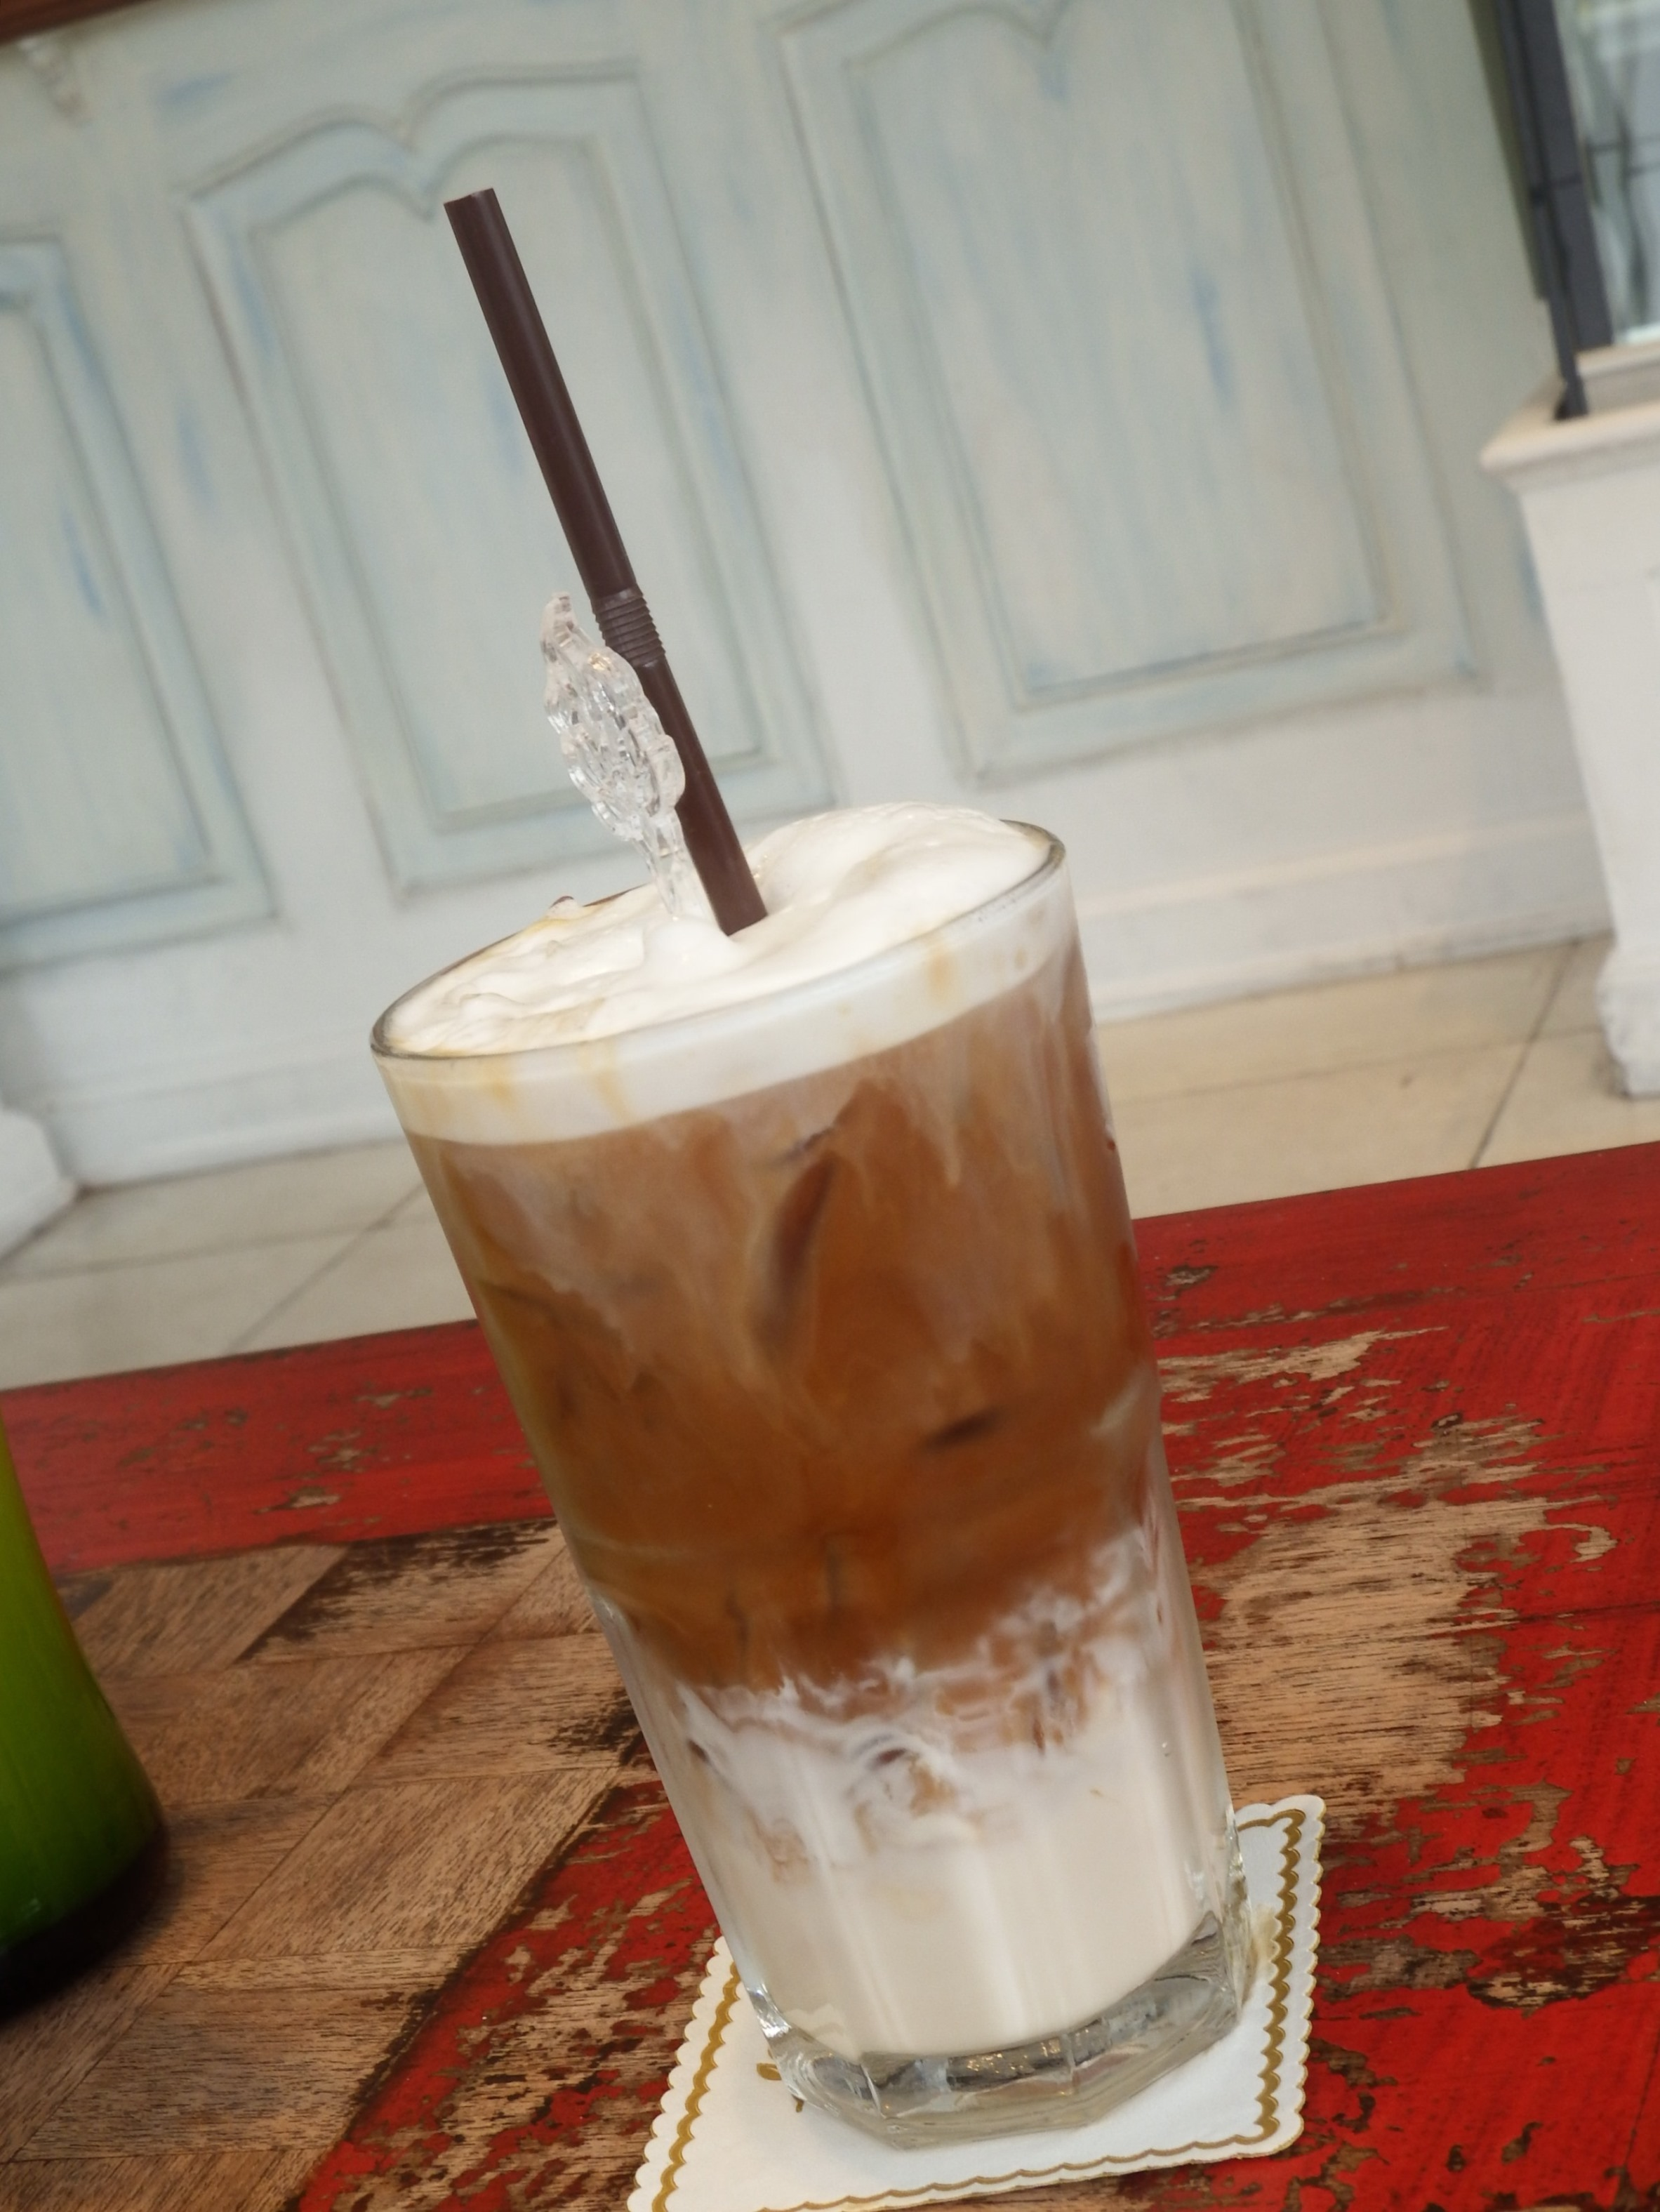 Creamy Iced Latte, Glass, Nobody, Mix, Layers, HQ Photo